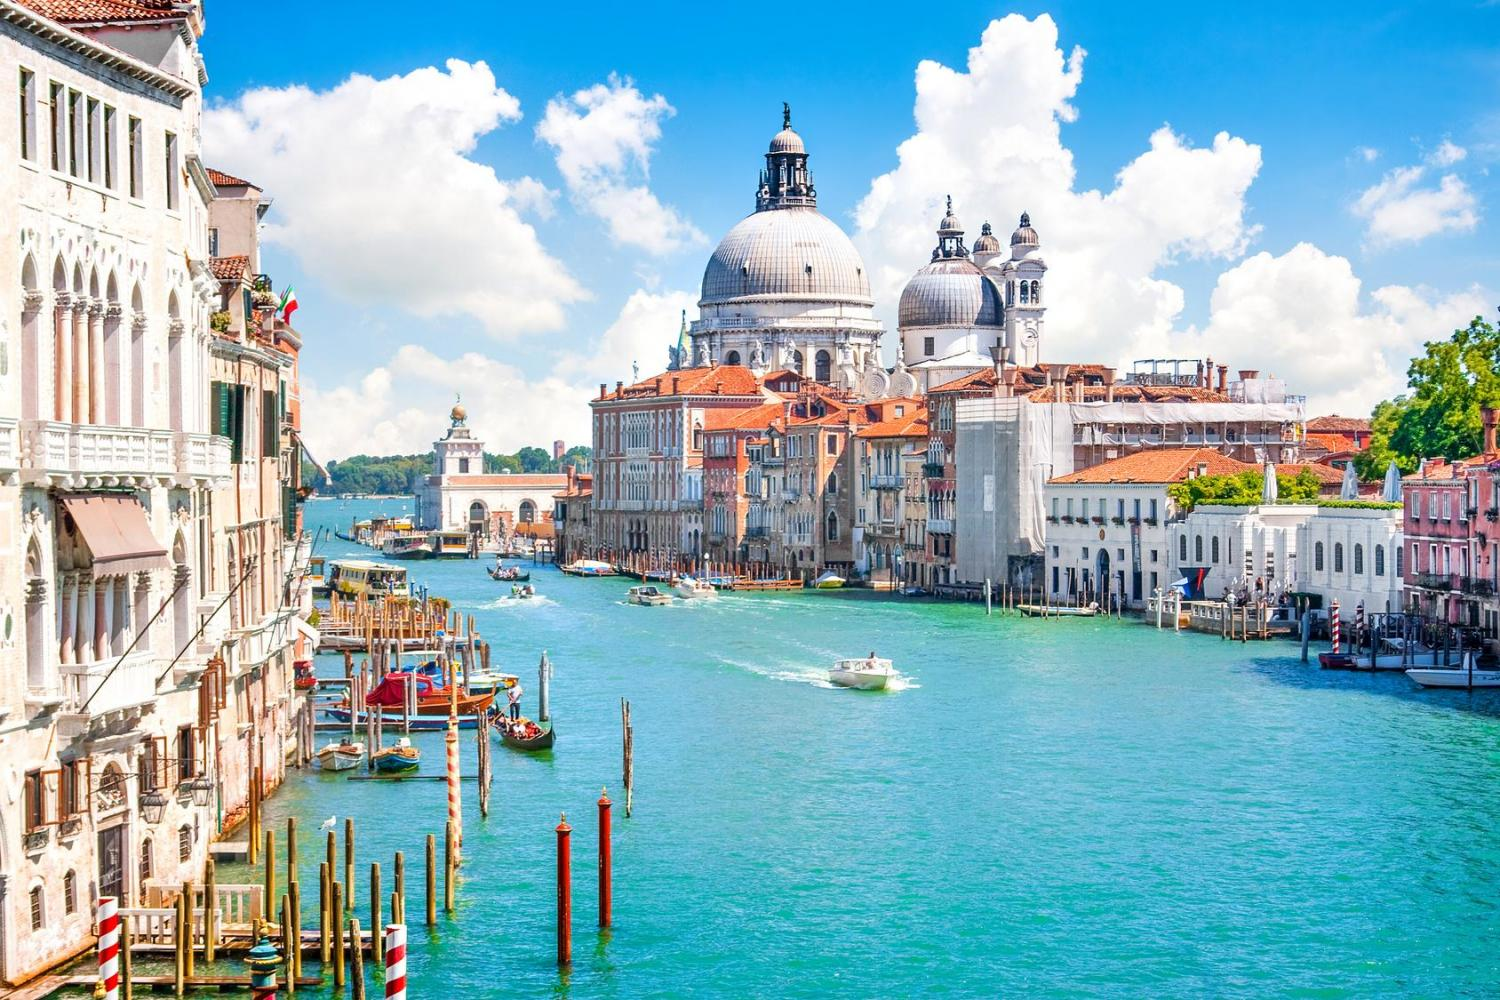 Avventure Bellissime's Small group Grand Canal Boat tour